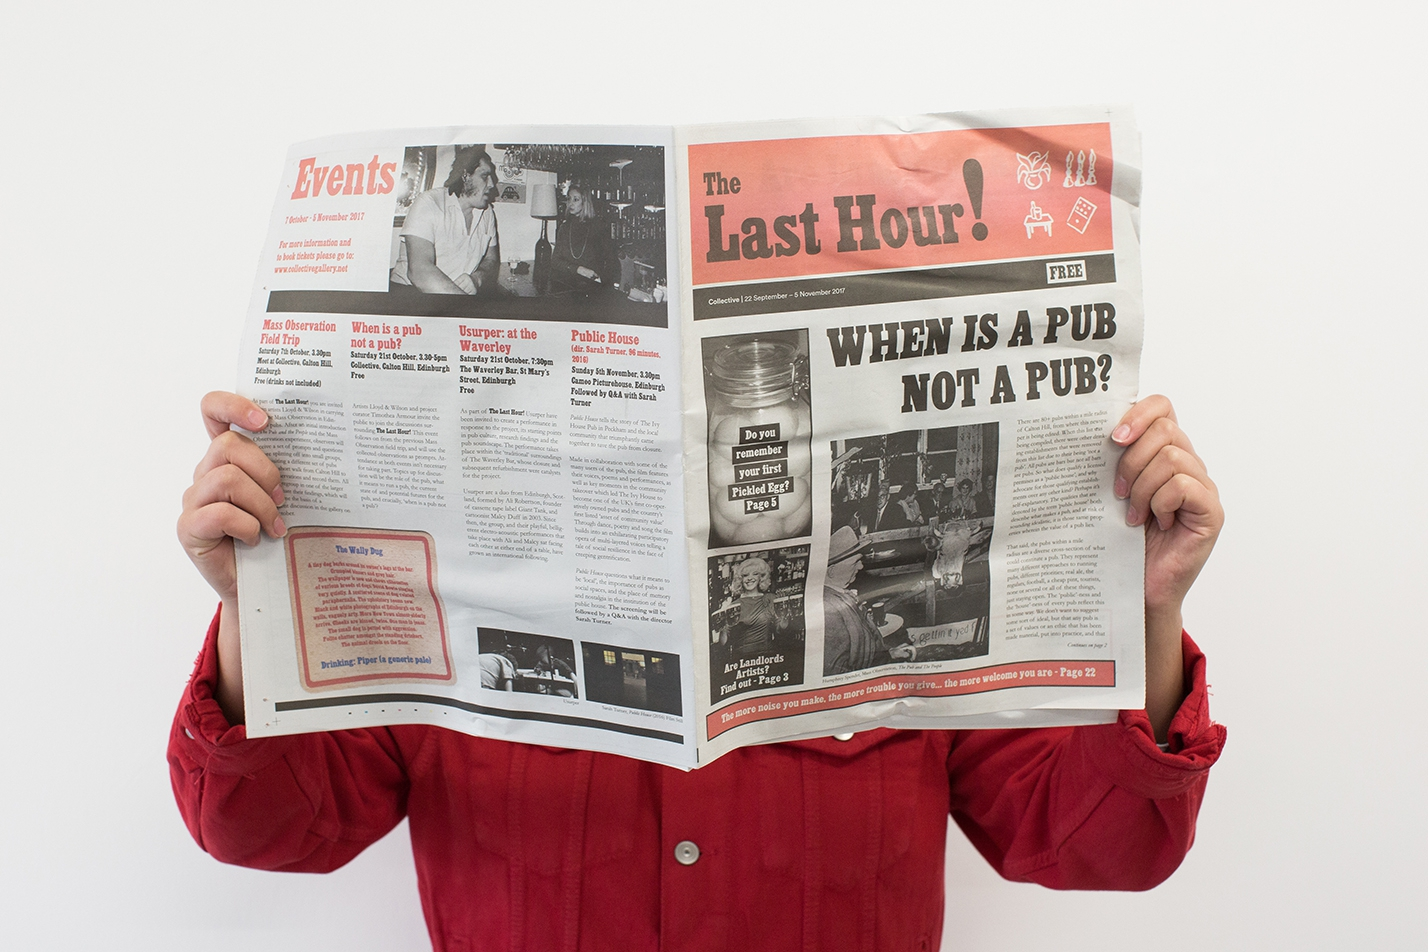 'The Last Hour! Newspaper', publication curated by Timothea Armour, 2017. Photo by Tom Nolan.